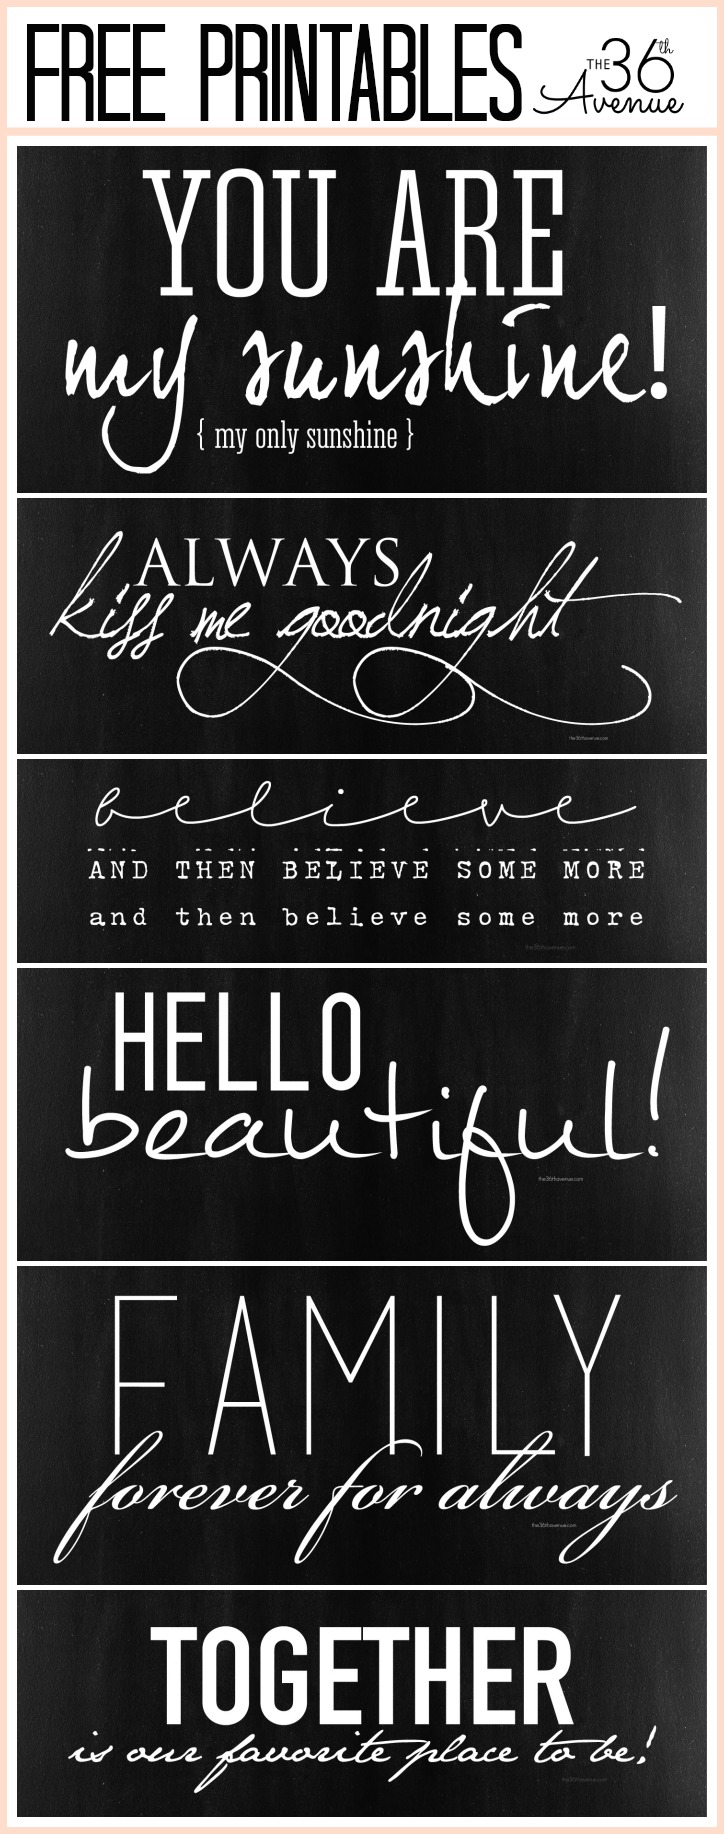 image relating to Free Printable Fonts titled Totally free Fonts and Printable Mixtures - The 36th Road